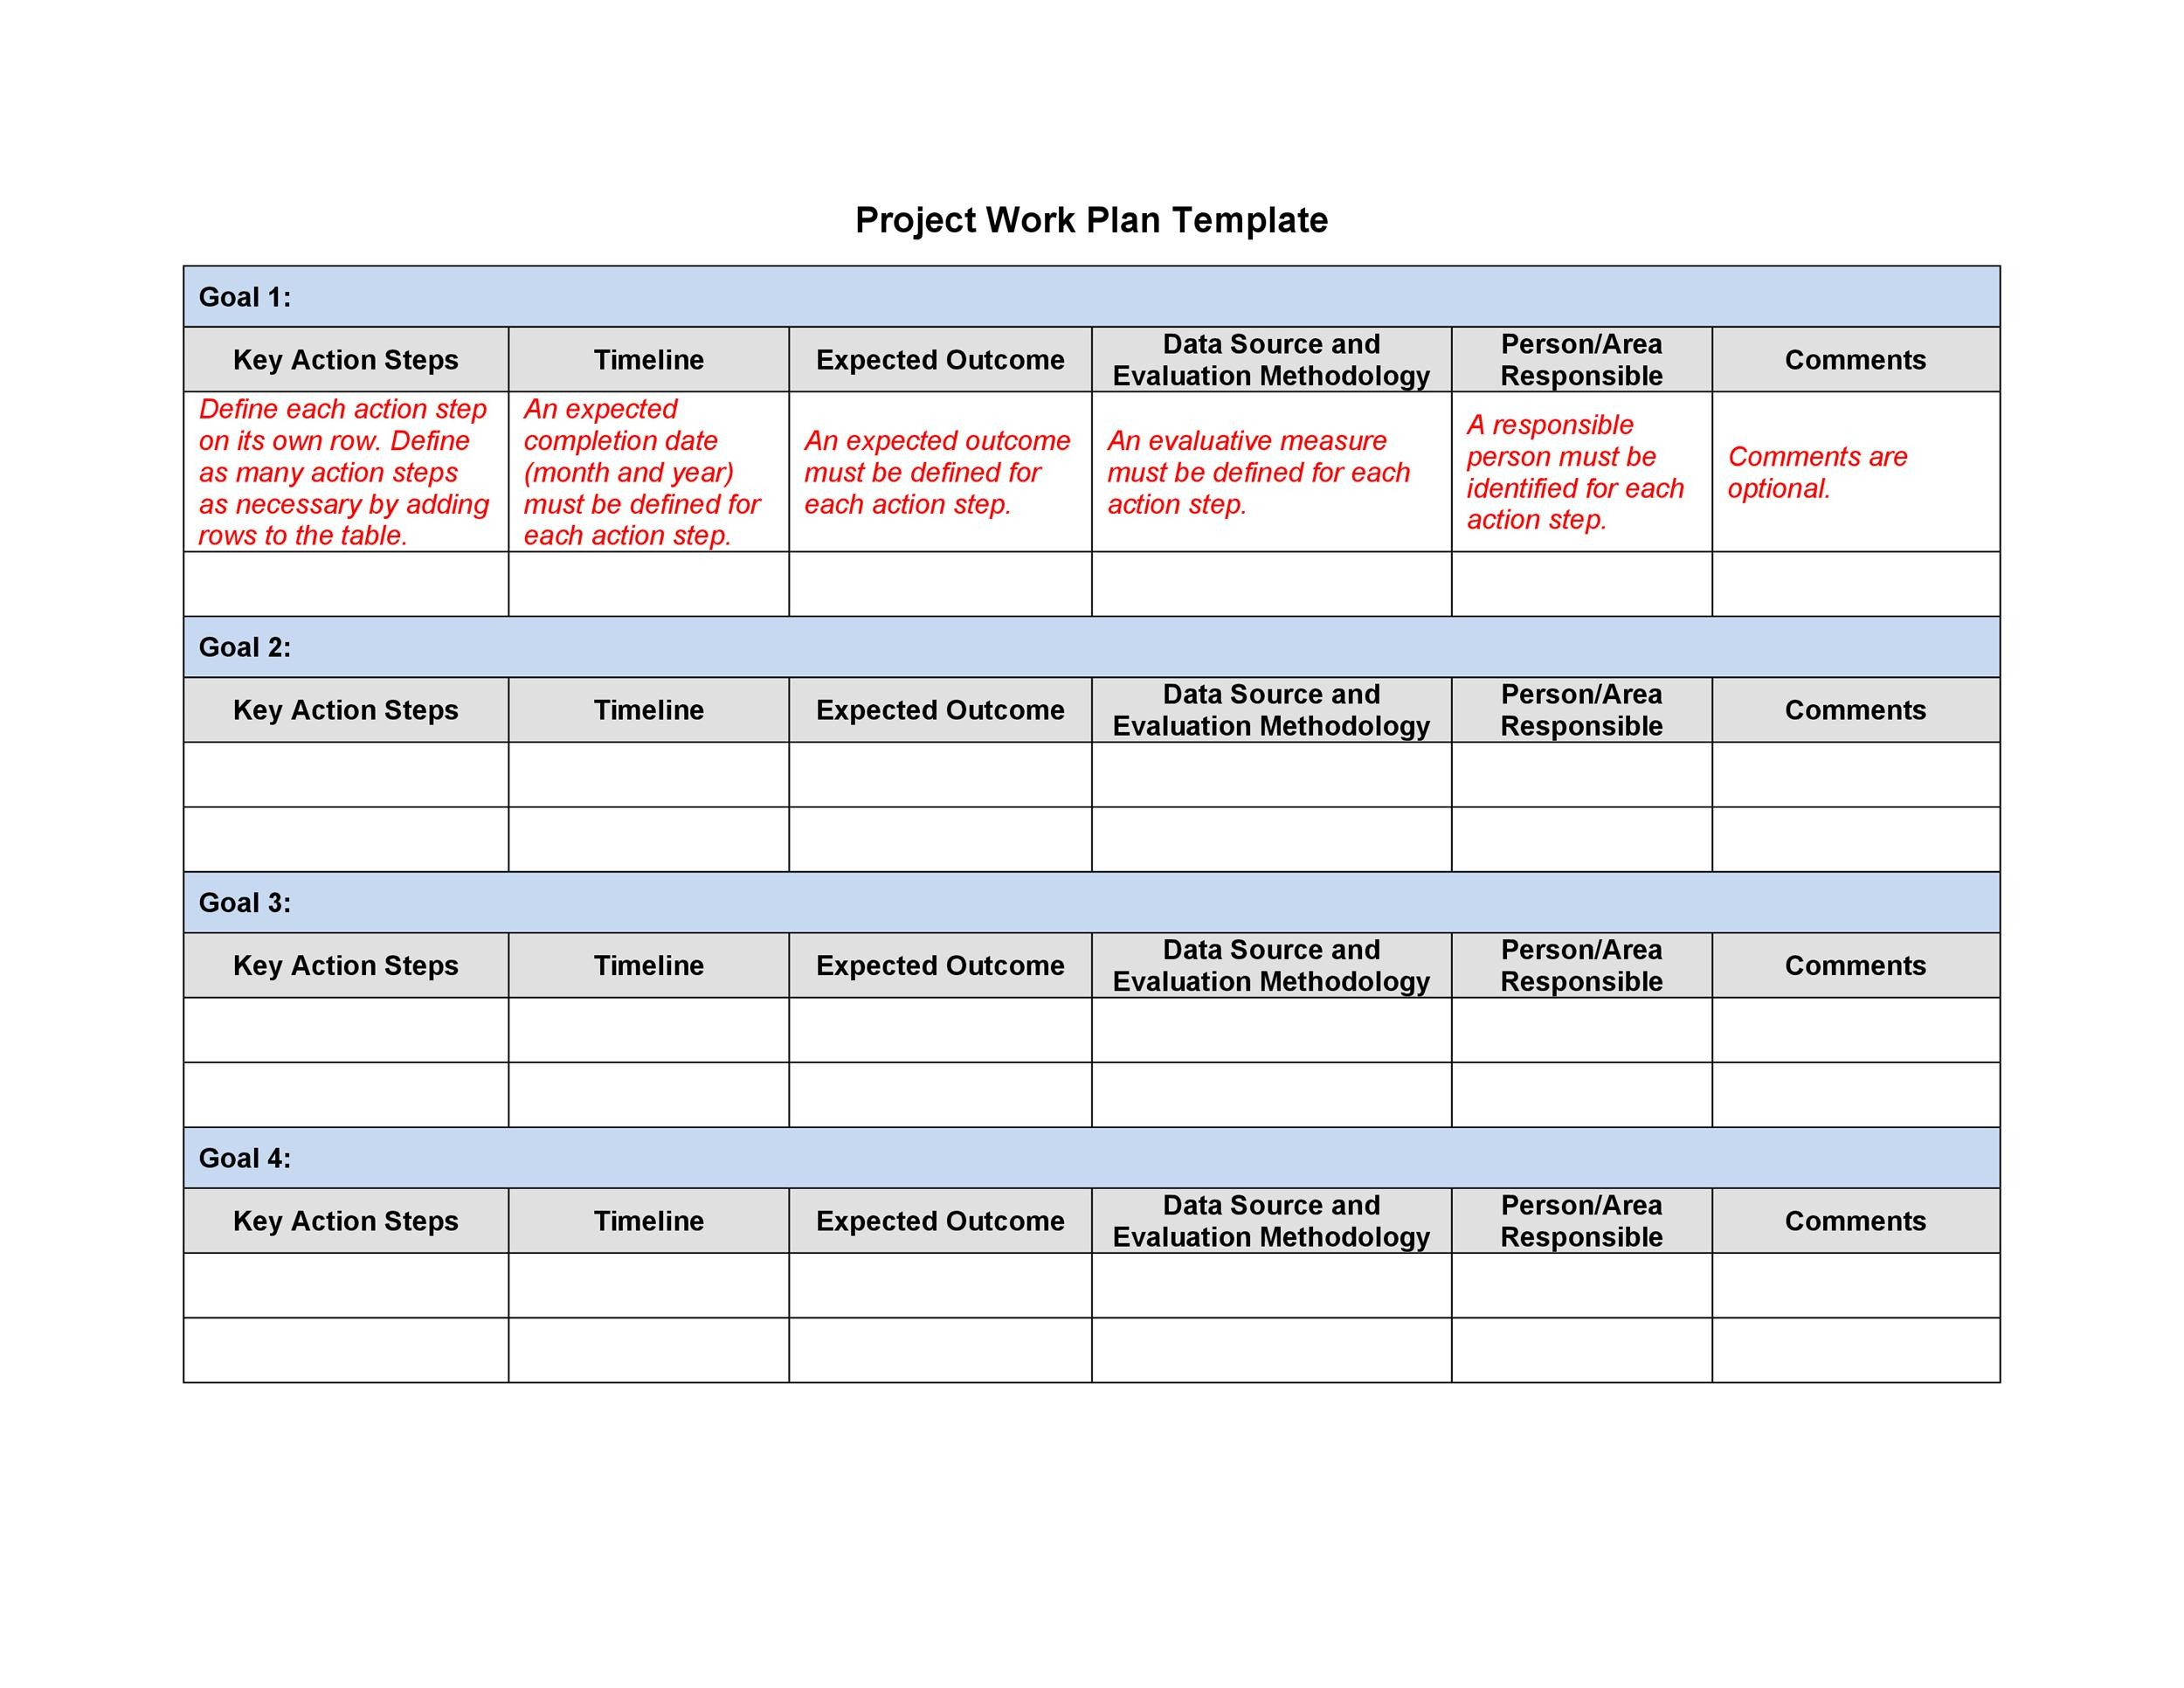 microsoft work plan template  Work Plan - 40 Great Templates & Samples (Excel / Word) ᐅ ..